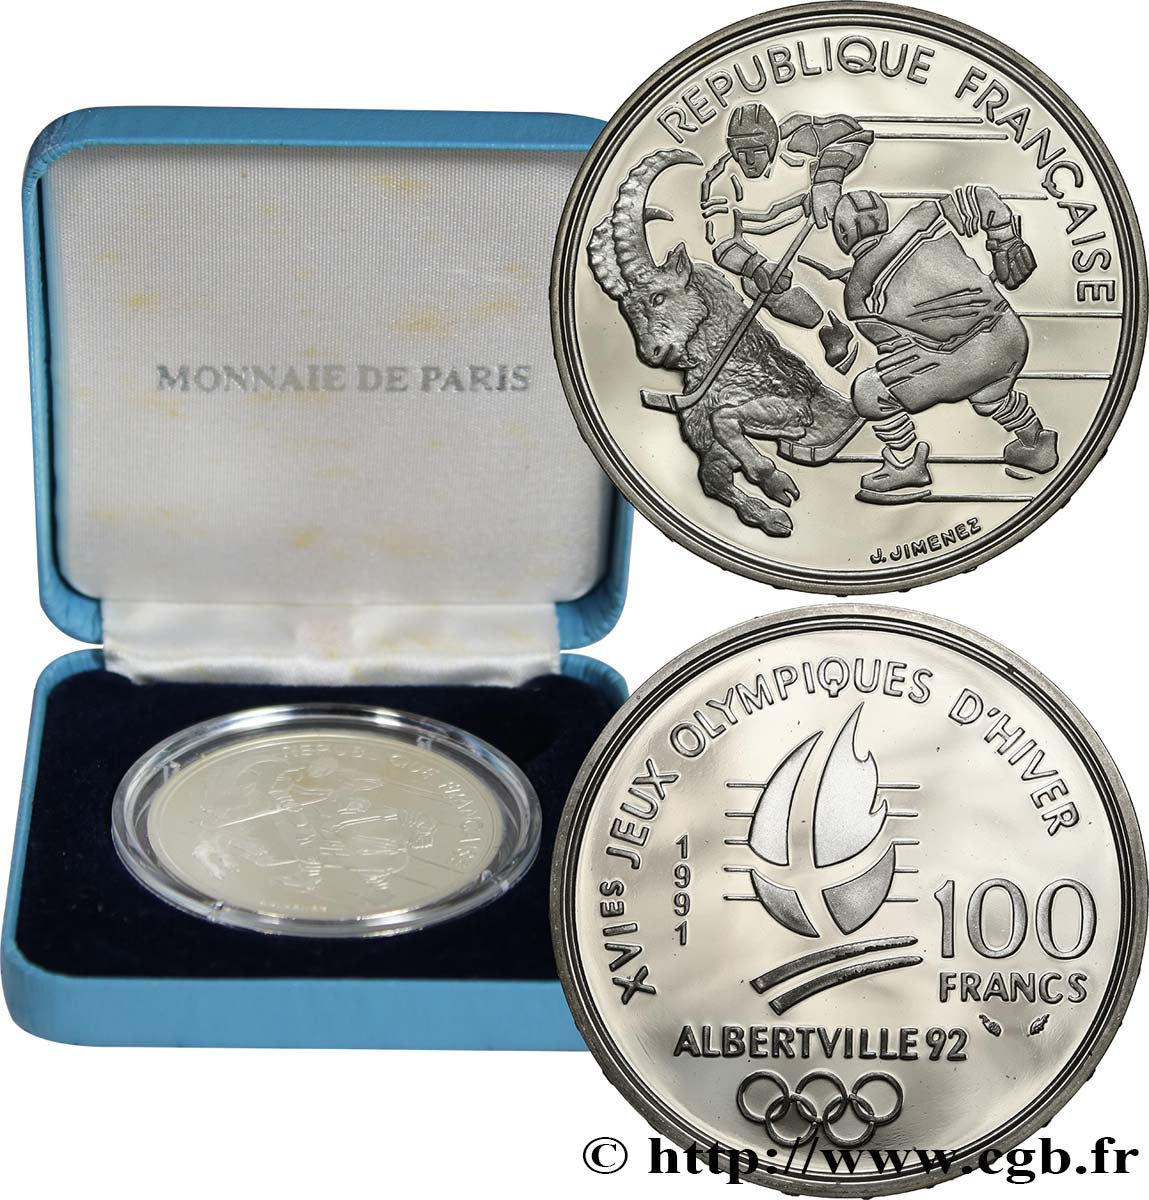 Belle Épreuve 100 francs - Hockey / Bouquetin 1991 Paris F5.1612 1 MS